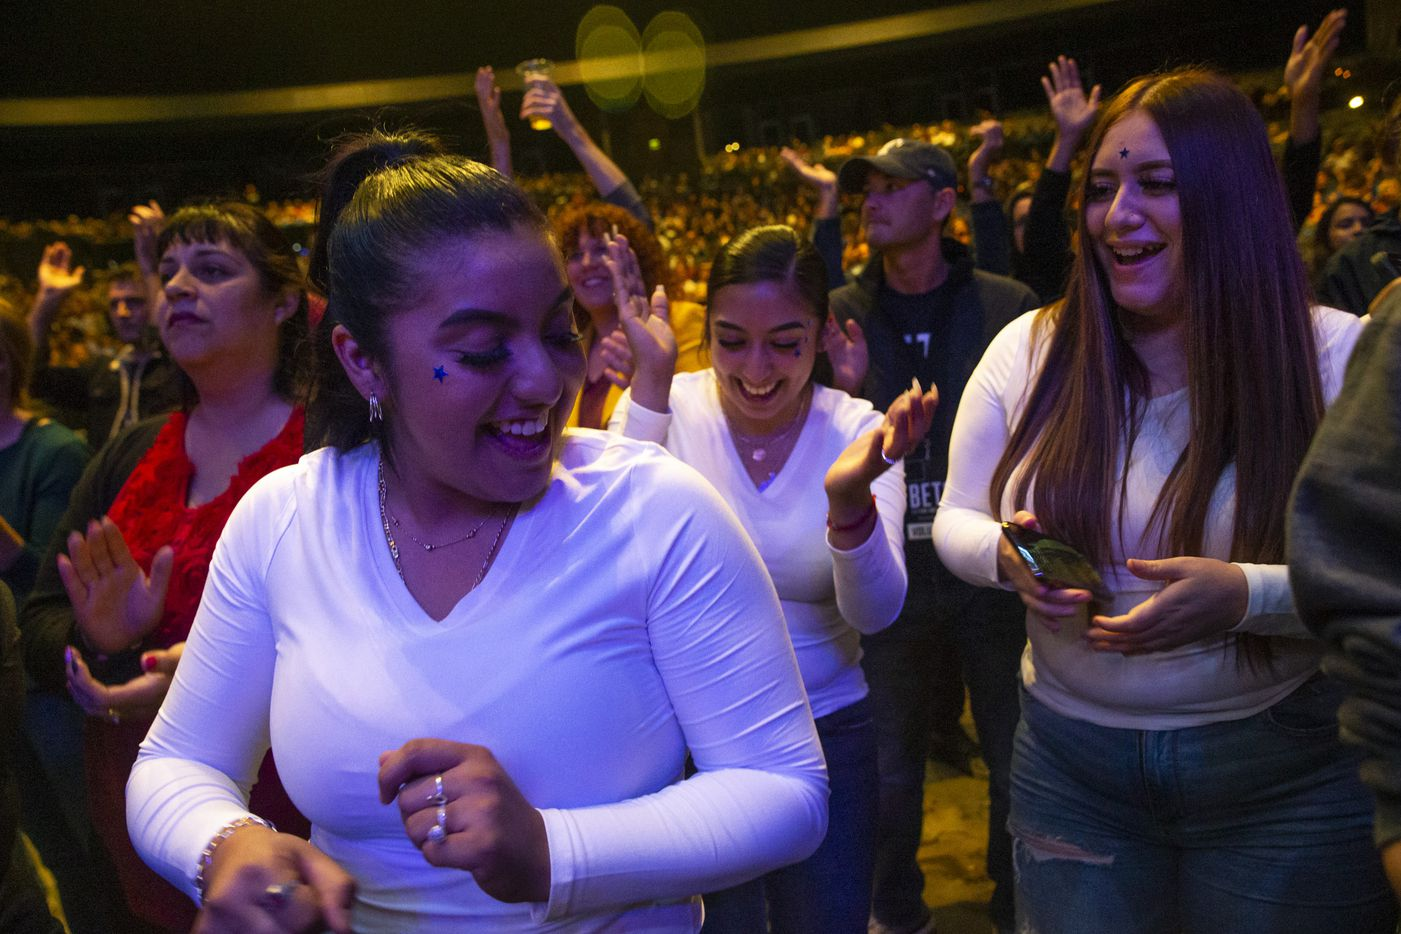 (From left) Yadenny Ocampo, Erica Ocampo and Giselle Figueroa, all from Dallas, dance to a musical performance during the Rally Against Fear event hosted by Democratic presidential candidate and former Texas Rep. Beto O'Rourke in the Theatre at Grand Prairie on Thursday, Oct. 17, 2019, in Grand Prairie, Texas. O'Rourke hosted the event in response to President Donald Trump's rally in downtown Dallas at the same time.